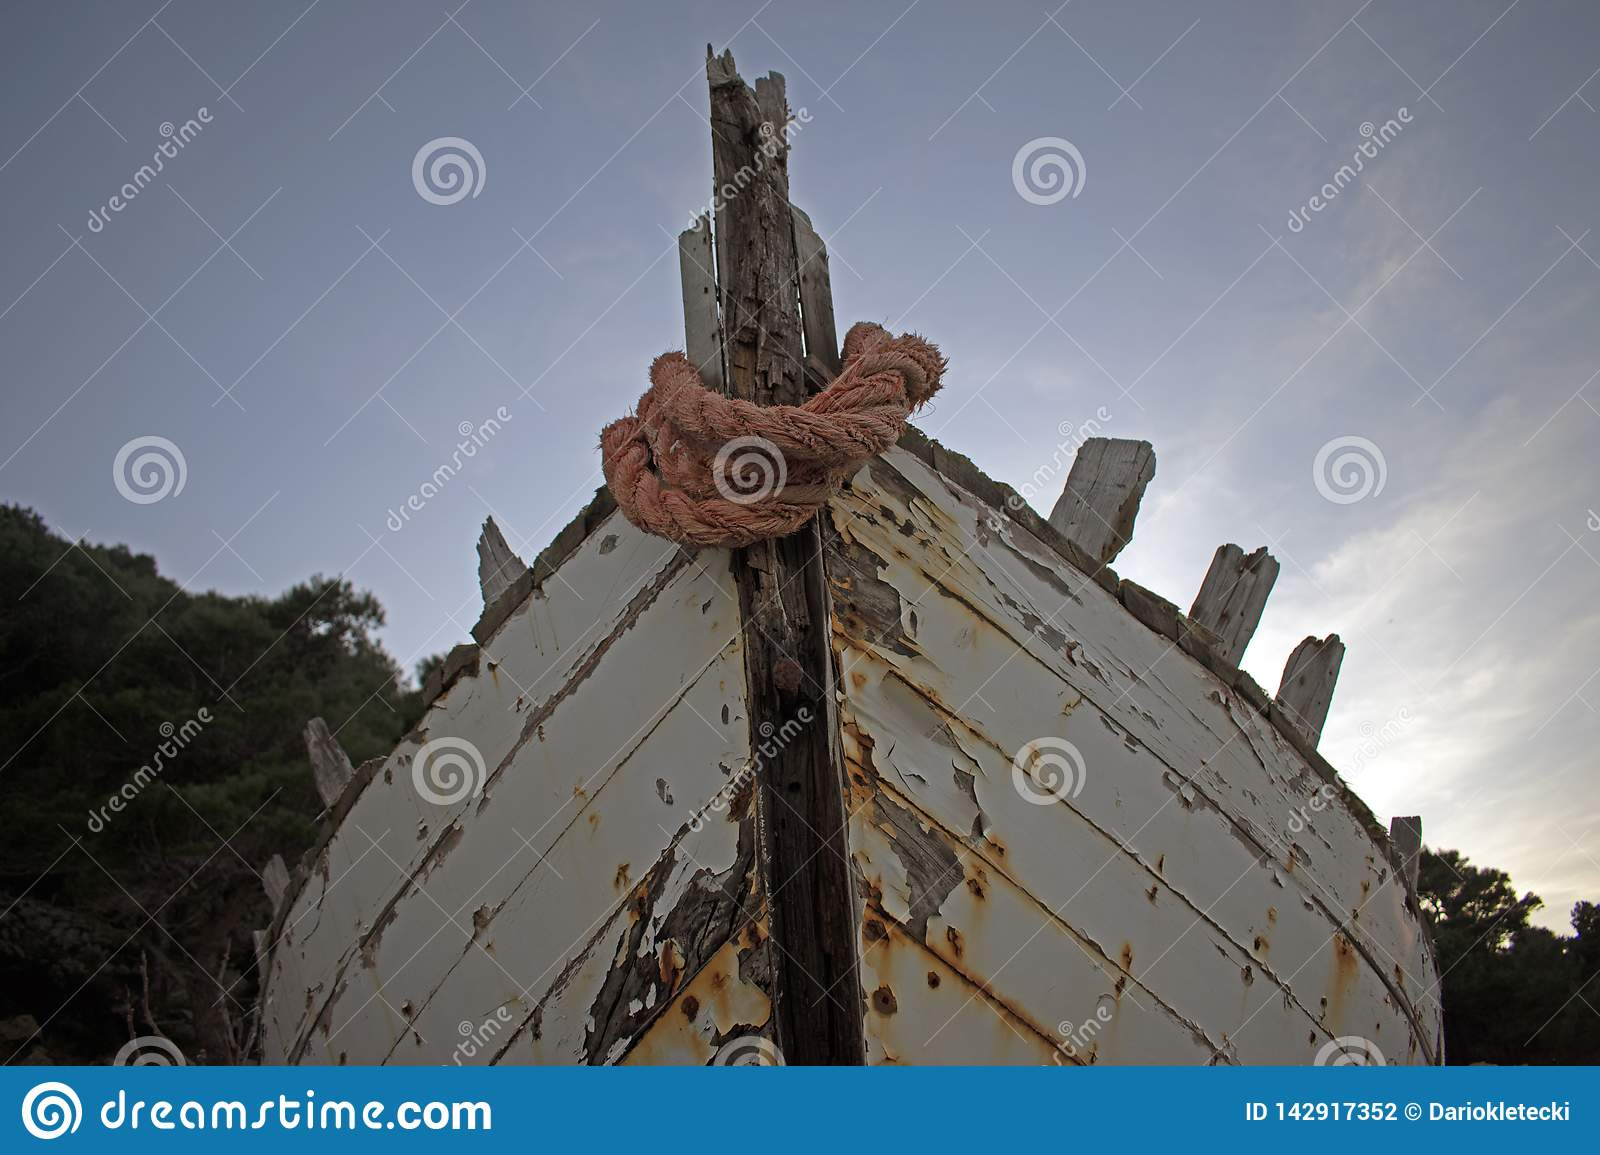 Old rotten wooden ship with paint peeling off